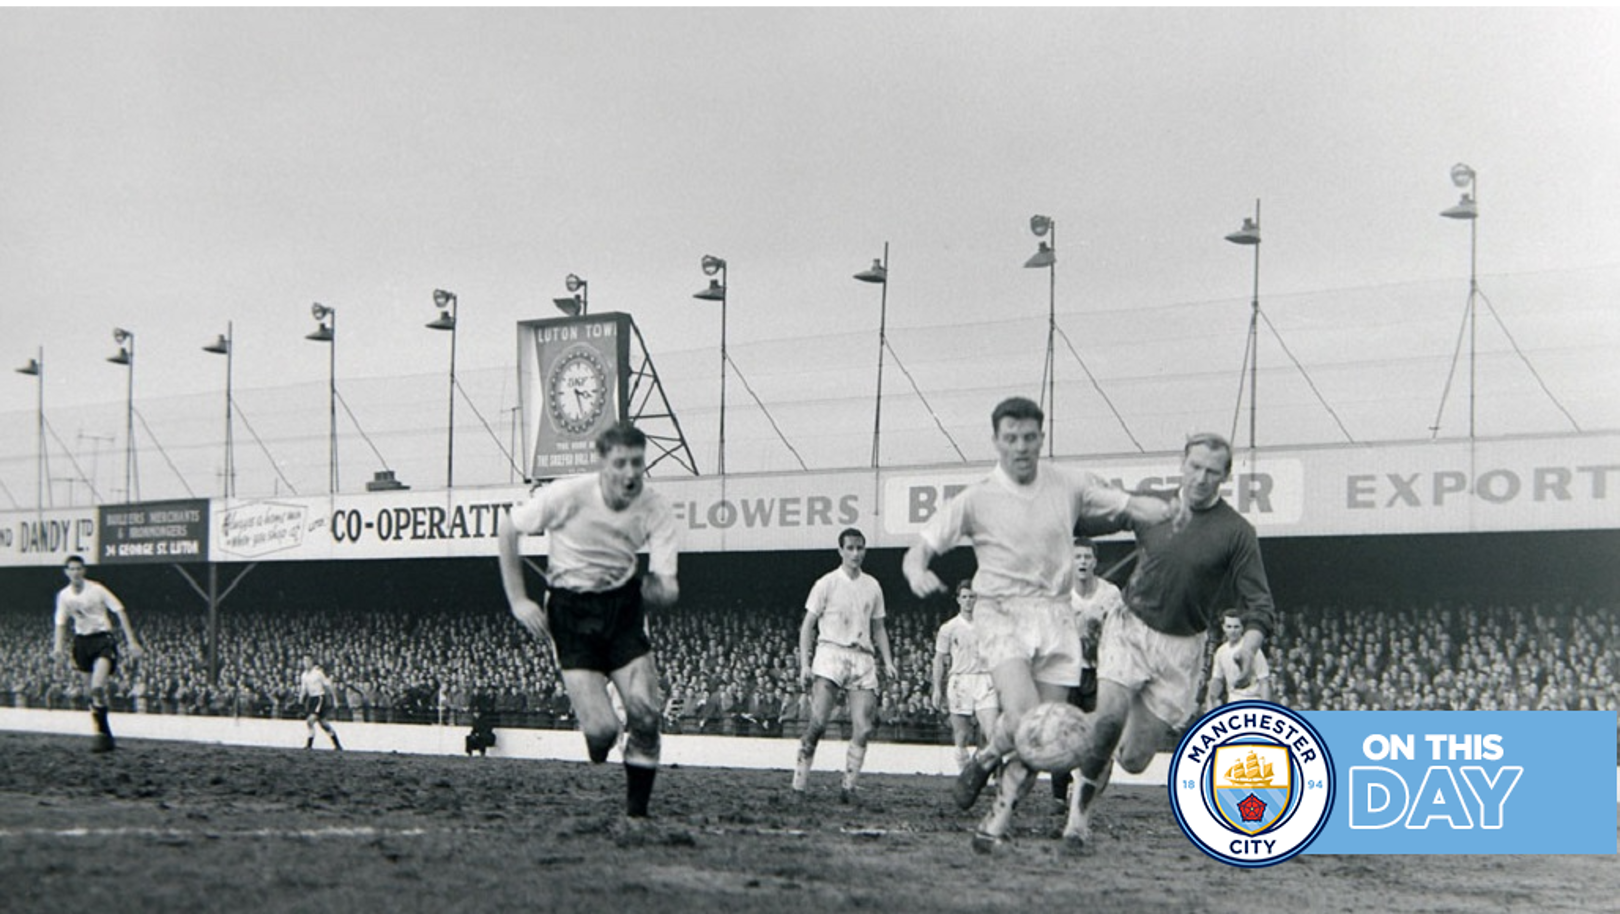 On this day: Law scores six  goals - and ends on losing side